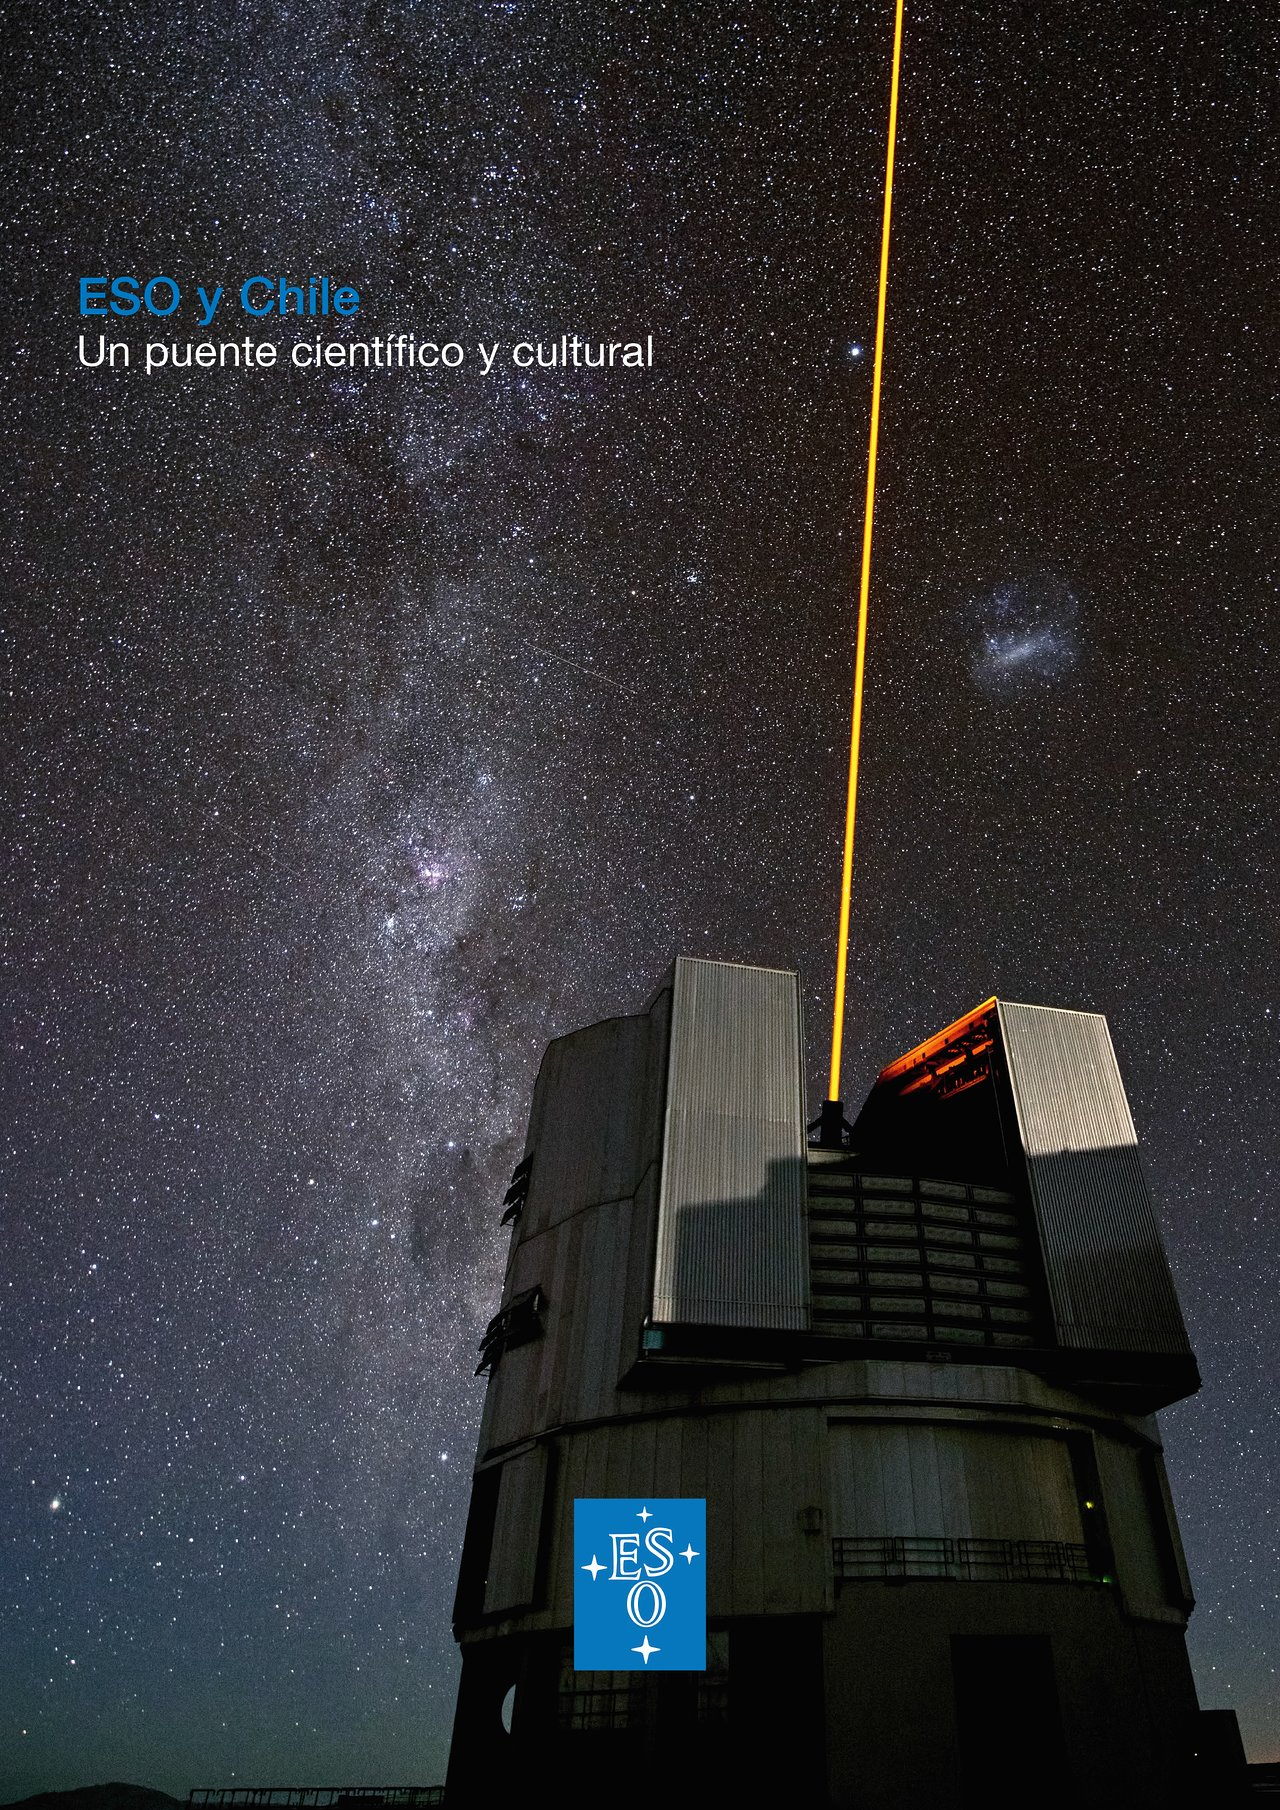 Cover of brochure ESO & Chile in Spanish